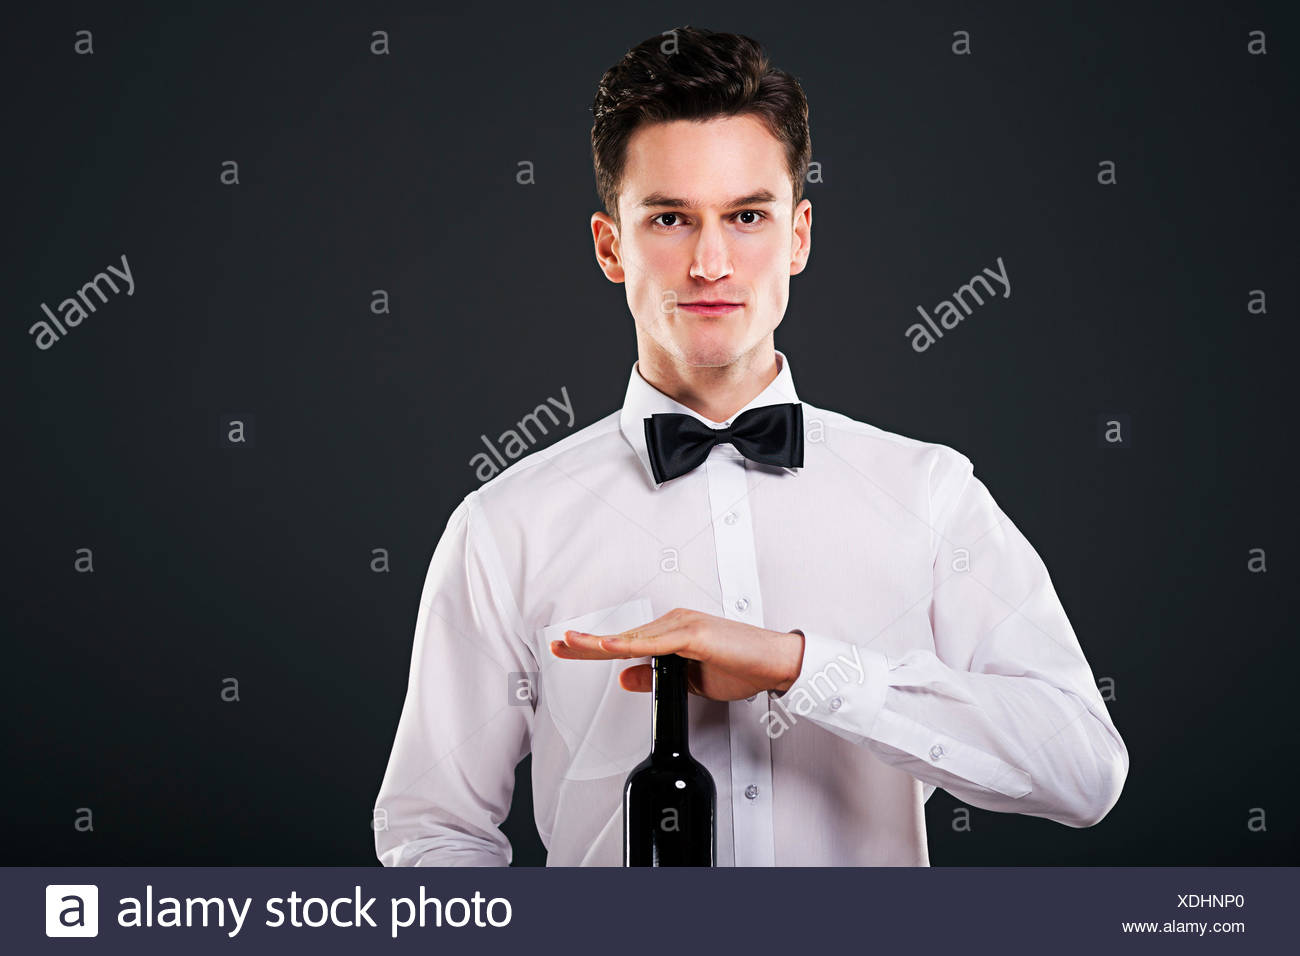 Focused waiter holding a bottle of wine Debica, Poland - Stock Image